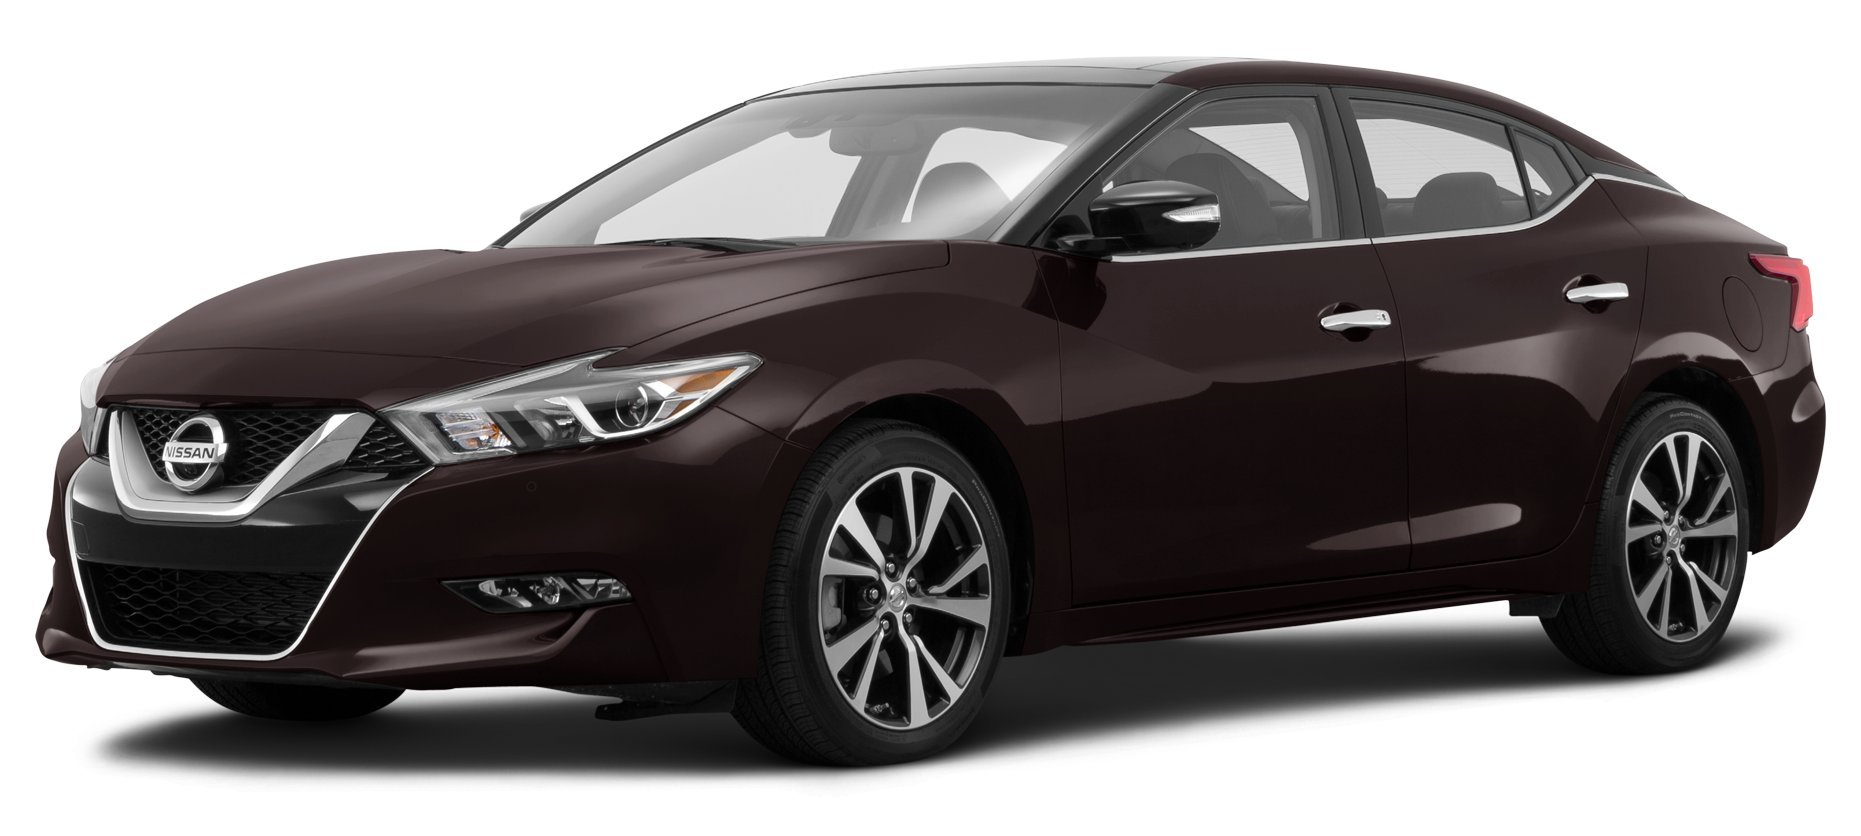 2017 nissan maxima reviews images and specs. Black Bedroom Furniture Sets. Home Design Ideas